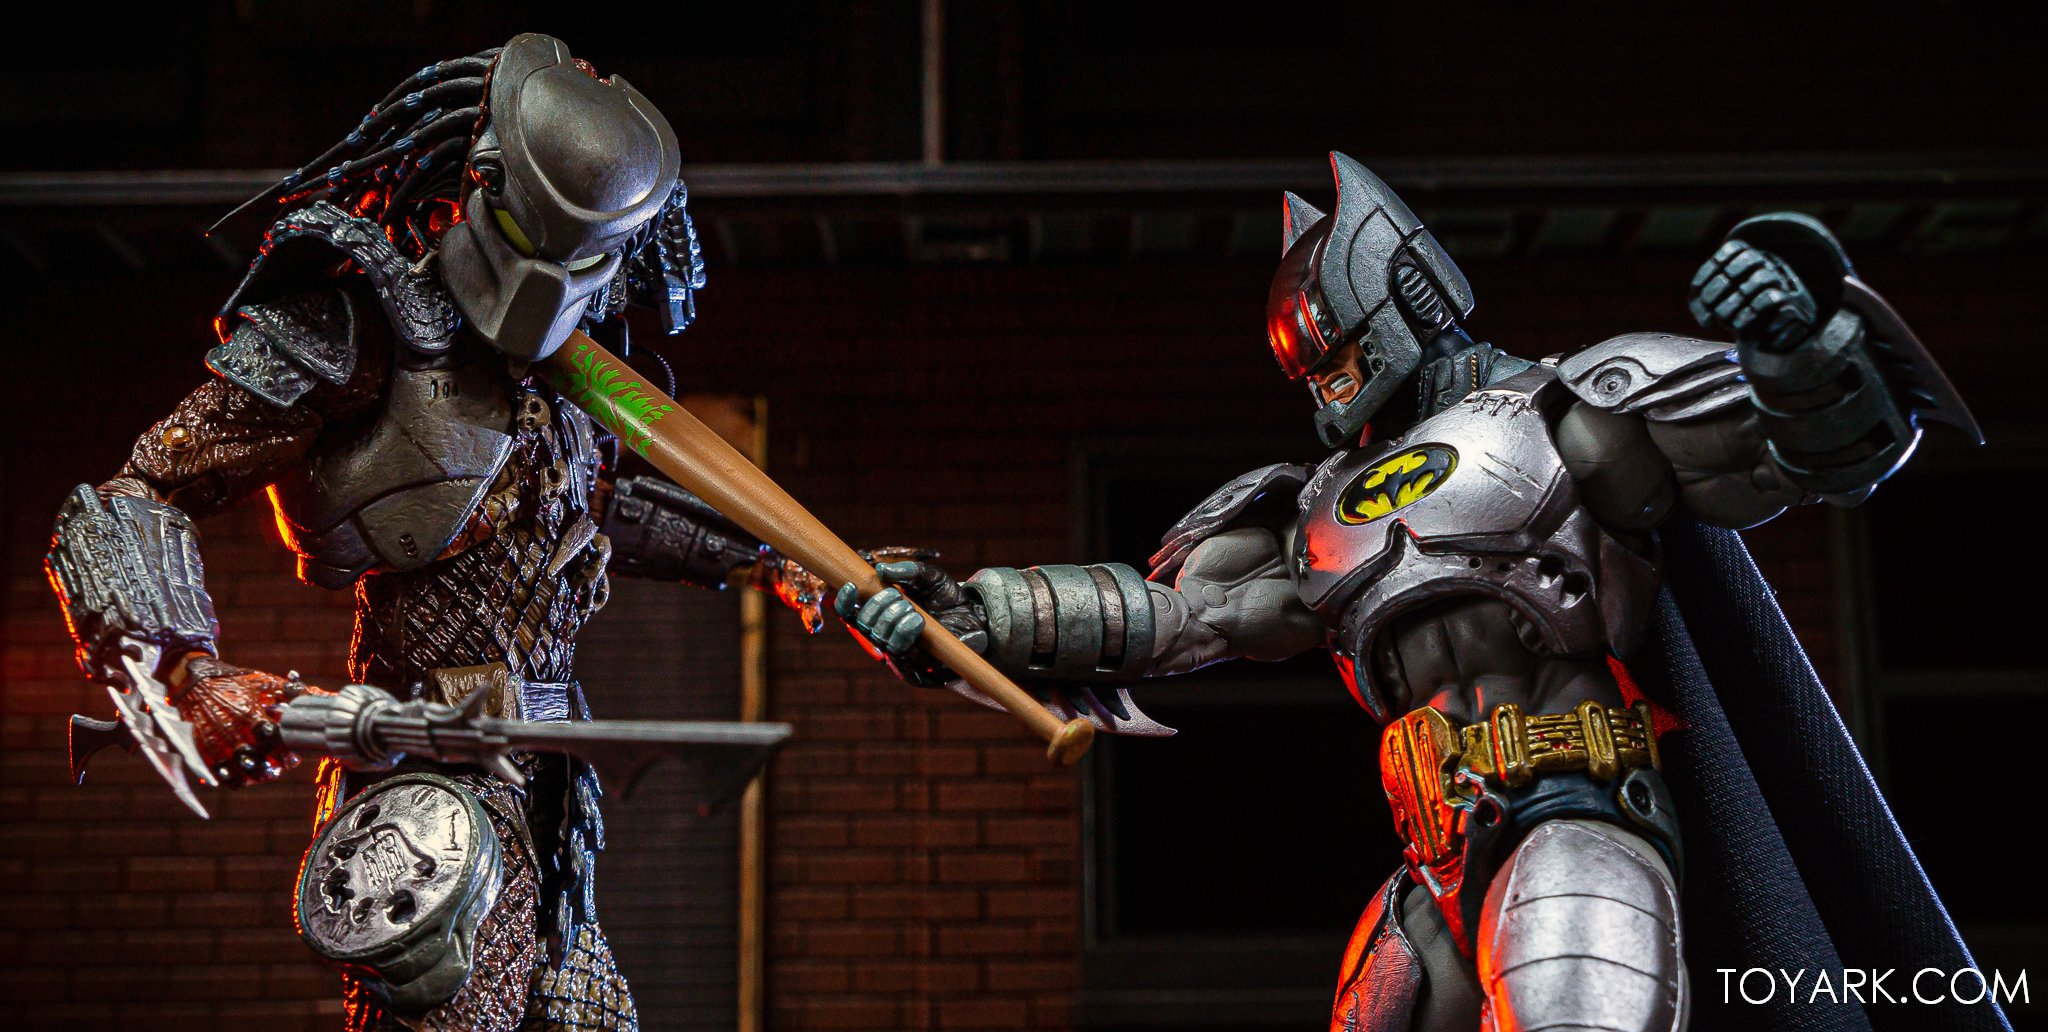 https://news.toyark.com/wp-content/uploads/sites/4/2019/09/Batman-vs-Predator-Set-043.jpg